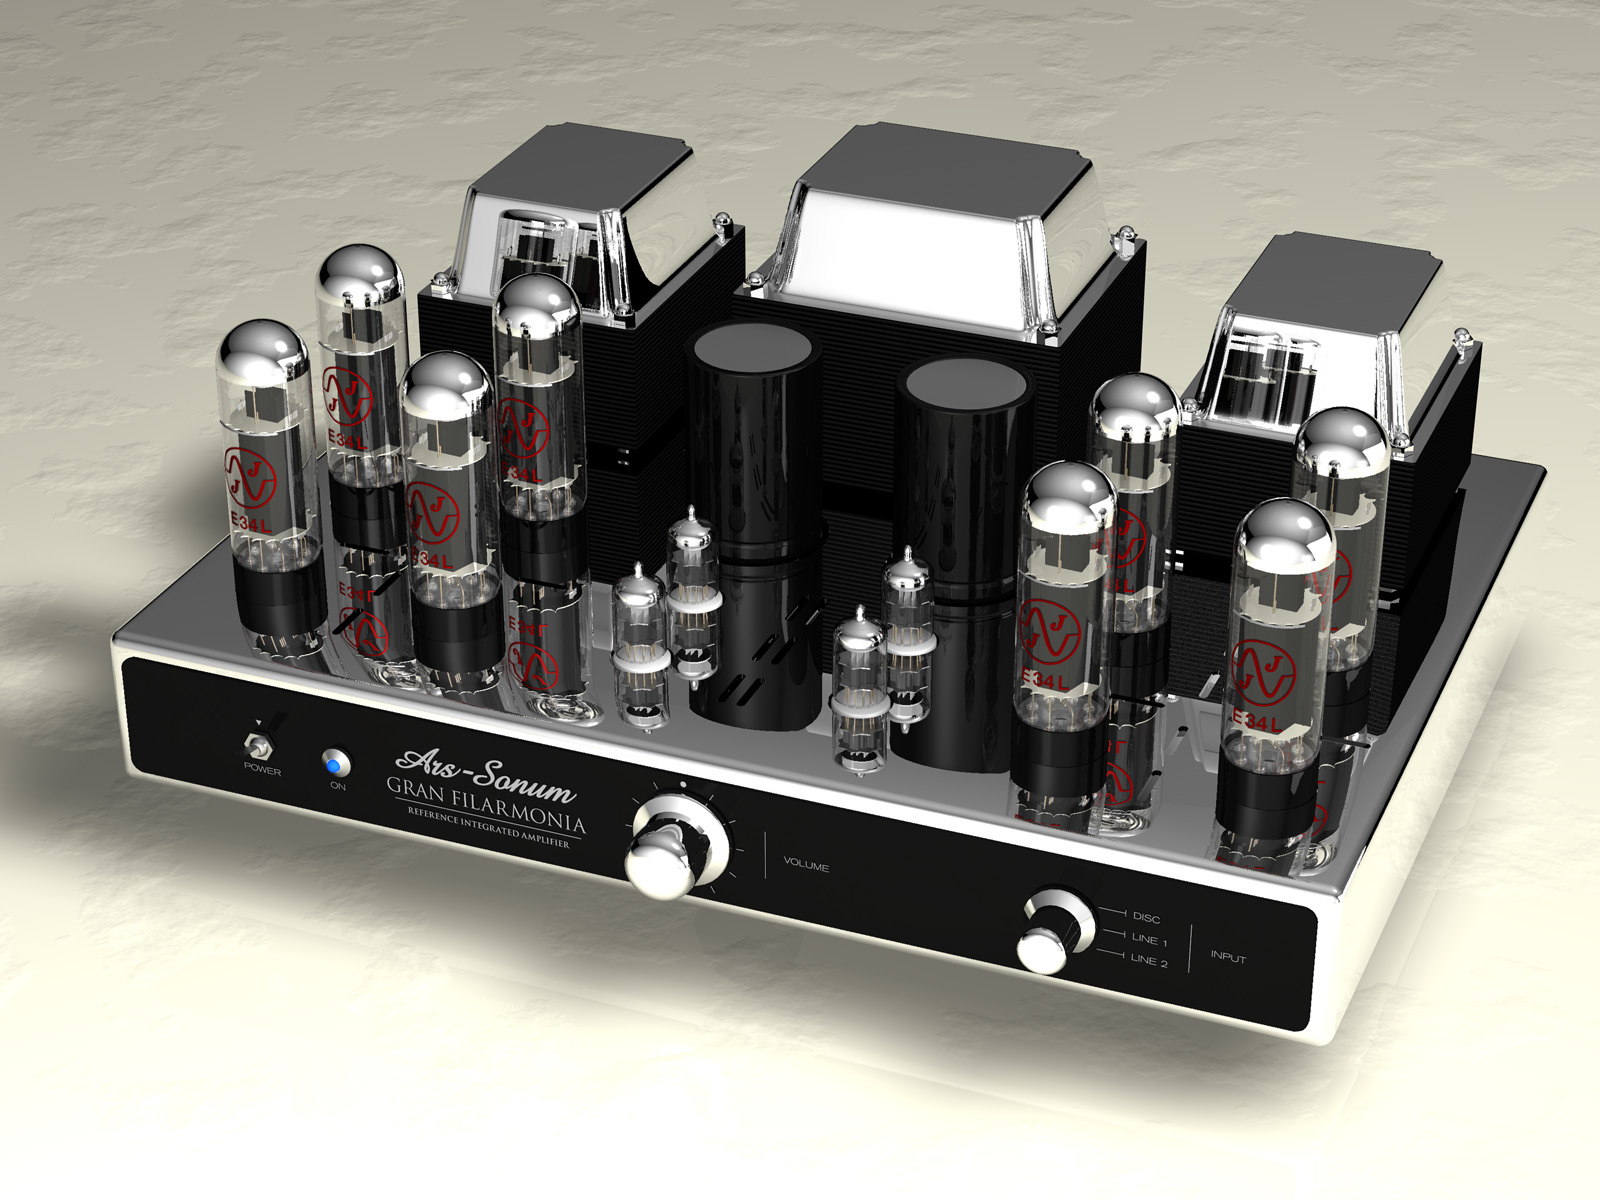 Ars Sonum Gran Filarmonia Integrared Amplifier